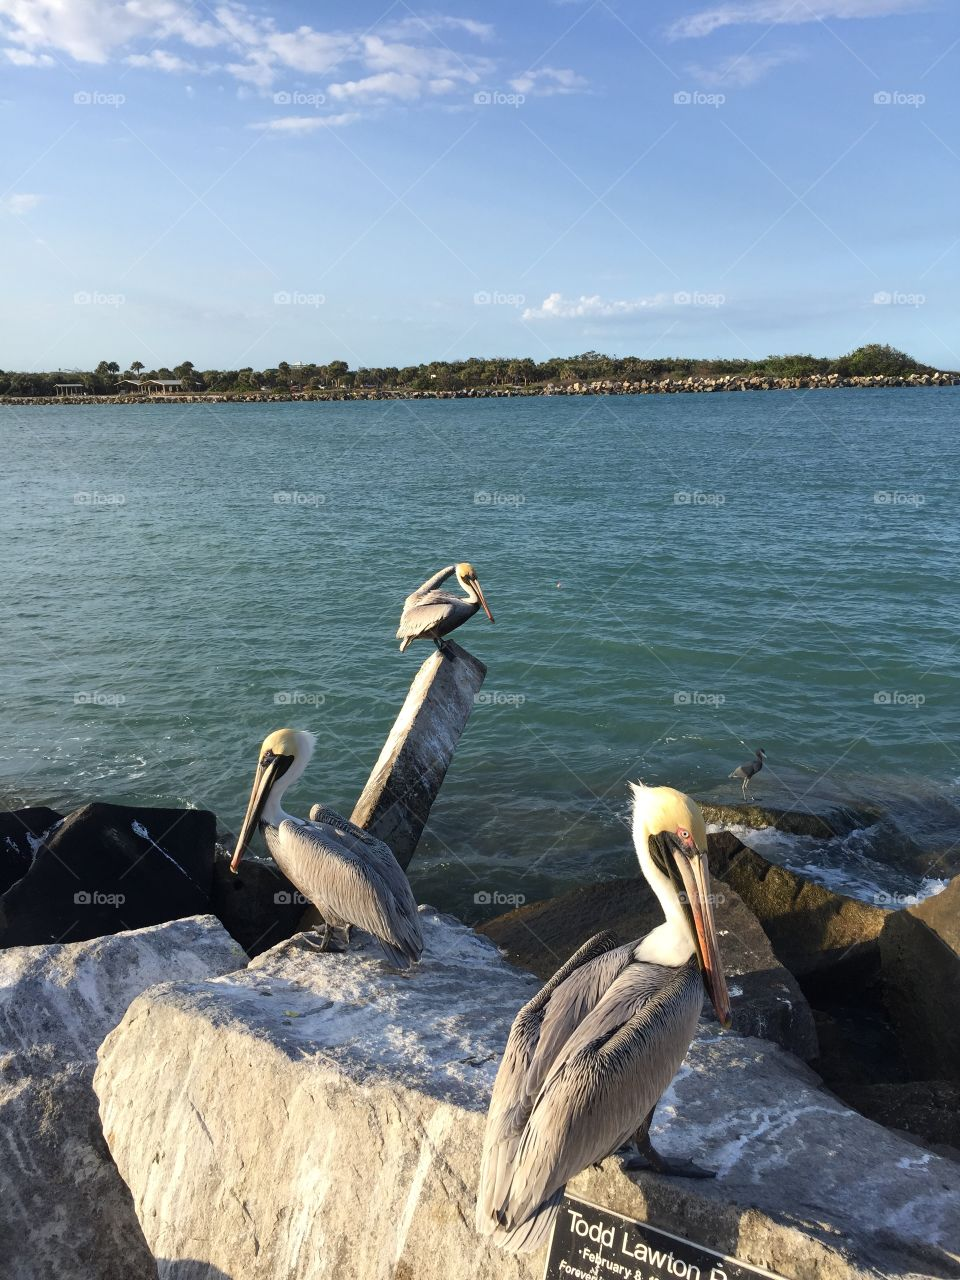 Beautiful water scene with pelicans and rocks